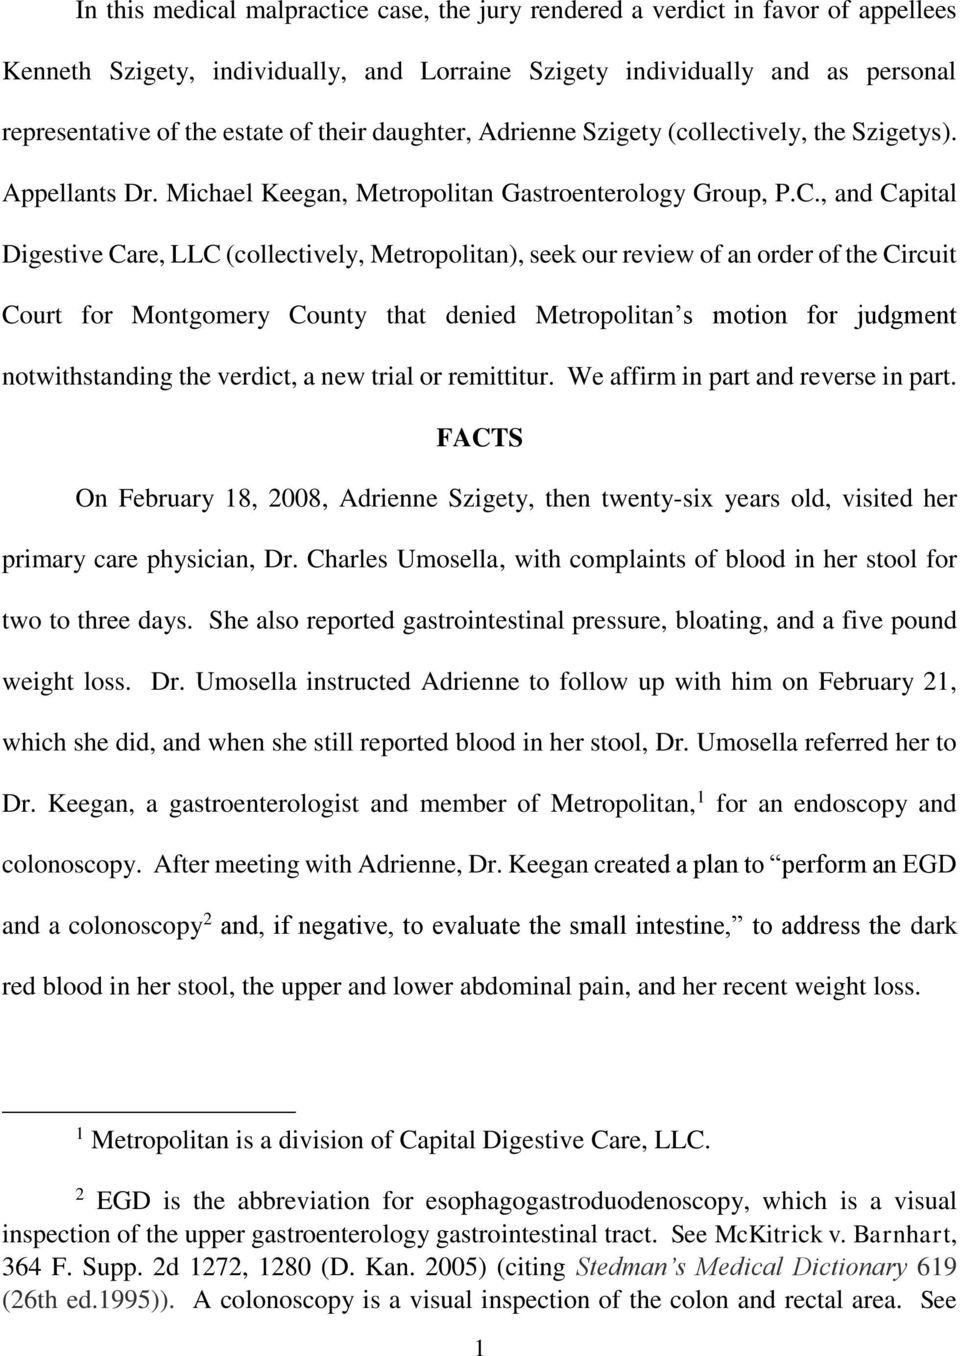 , and Capital Digestive Care, LLC (collectively, Metropolitan), seek our review of an order of the Circuit Court for Montgomery County that denied Metropolitan s motion for judgment notwithstanding